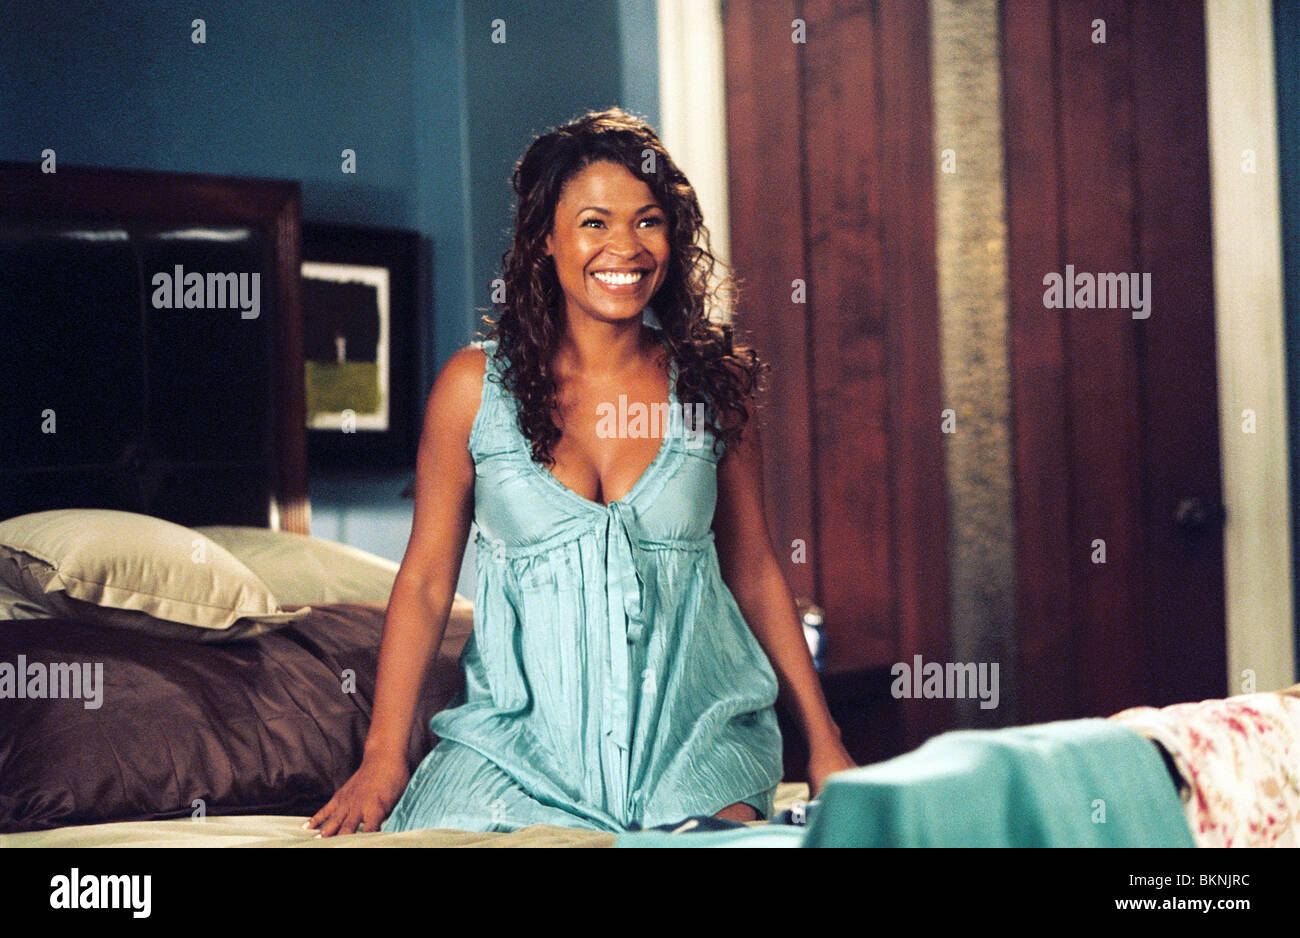 ARE WE DONE YET? (2007) NIA LONG DONE 001-07 - Stock Image